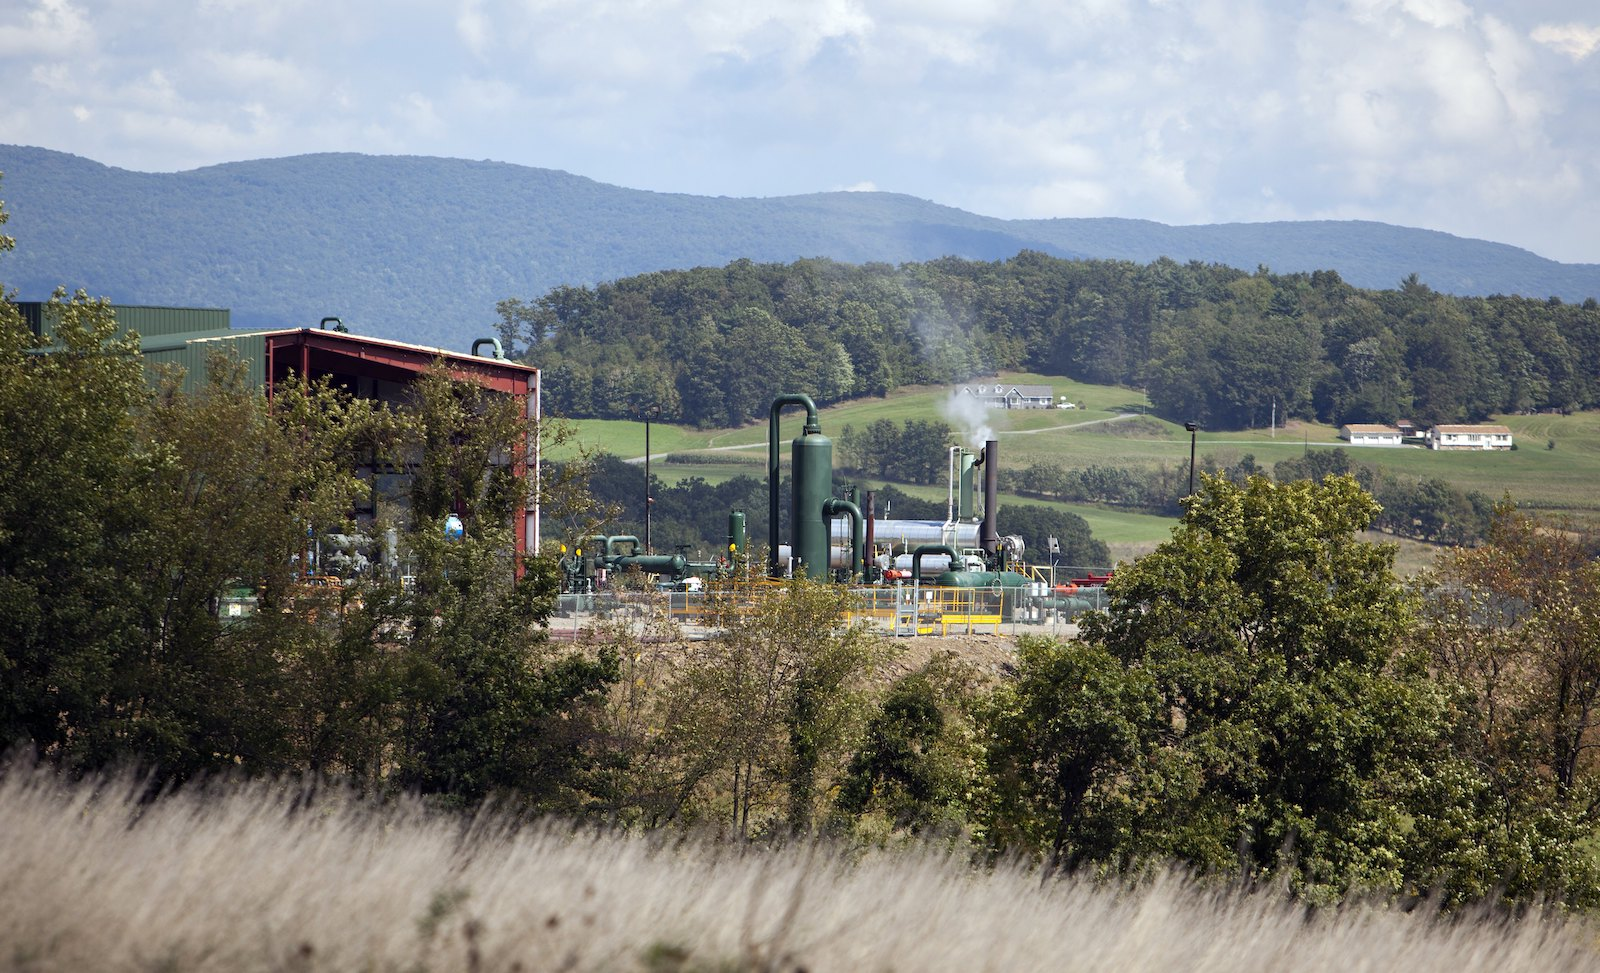 Penn Township in the Marcellus Shale